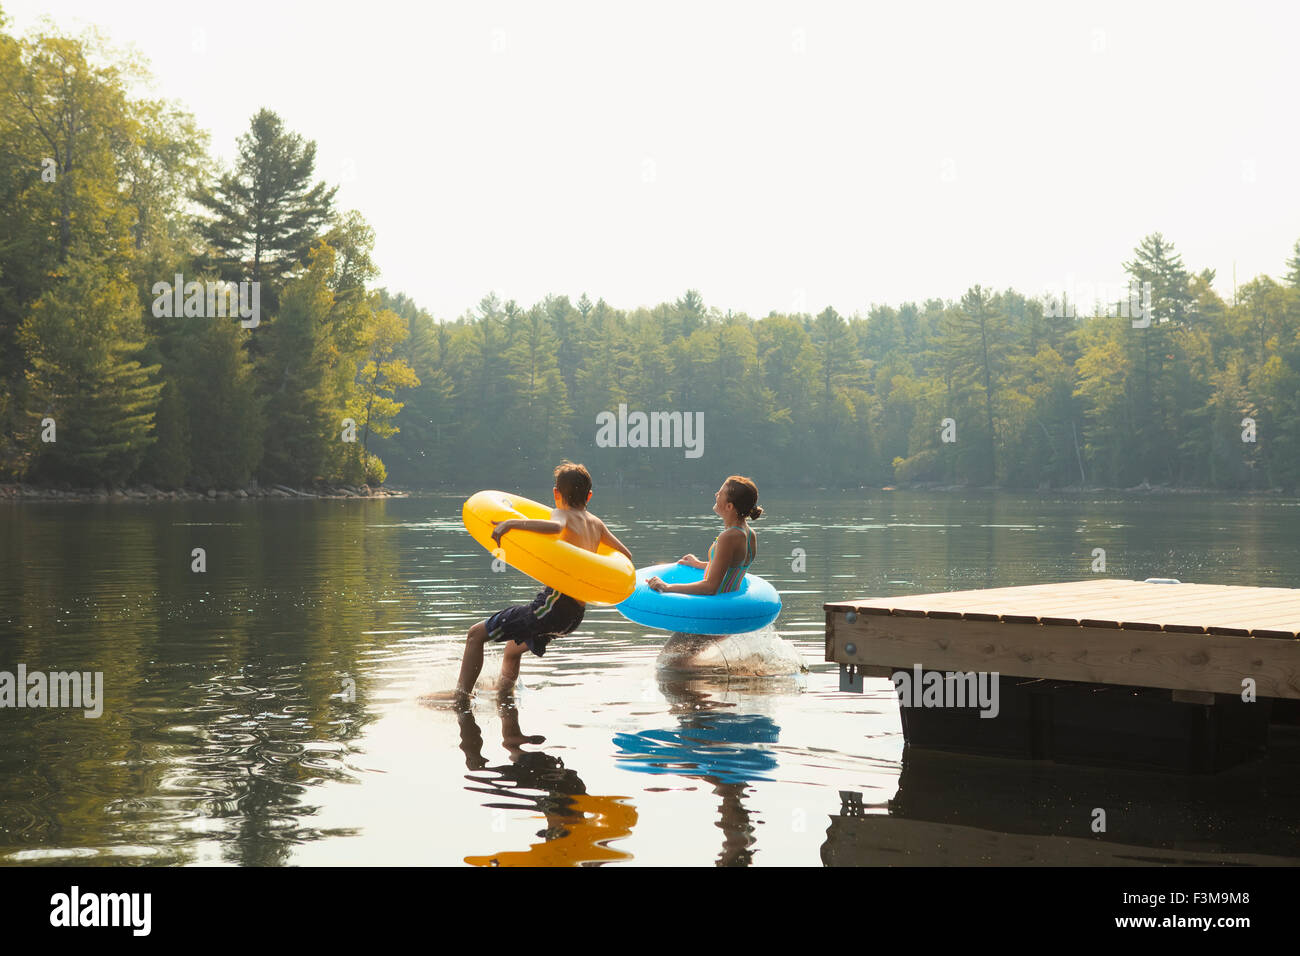 Girl,Jetty,Jumping,Ring,Inflatable,Boy,Lake - Stock Image